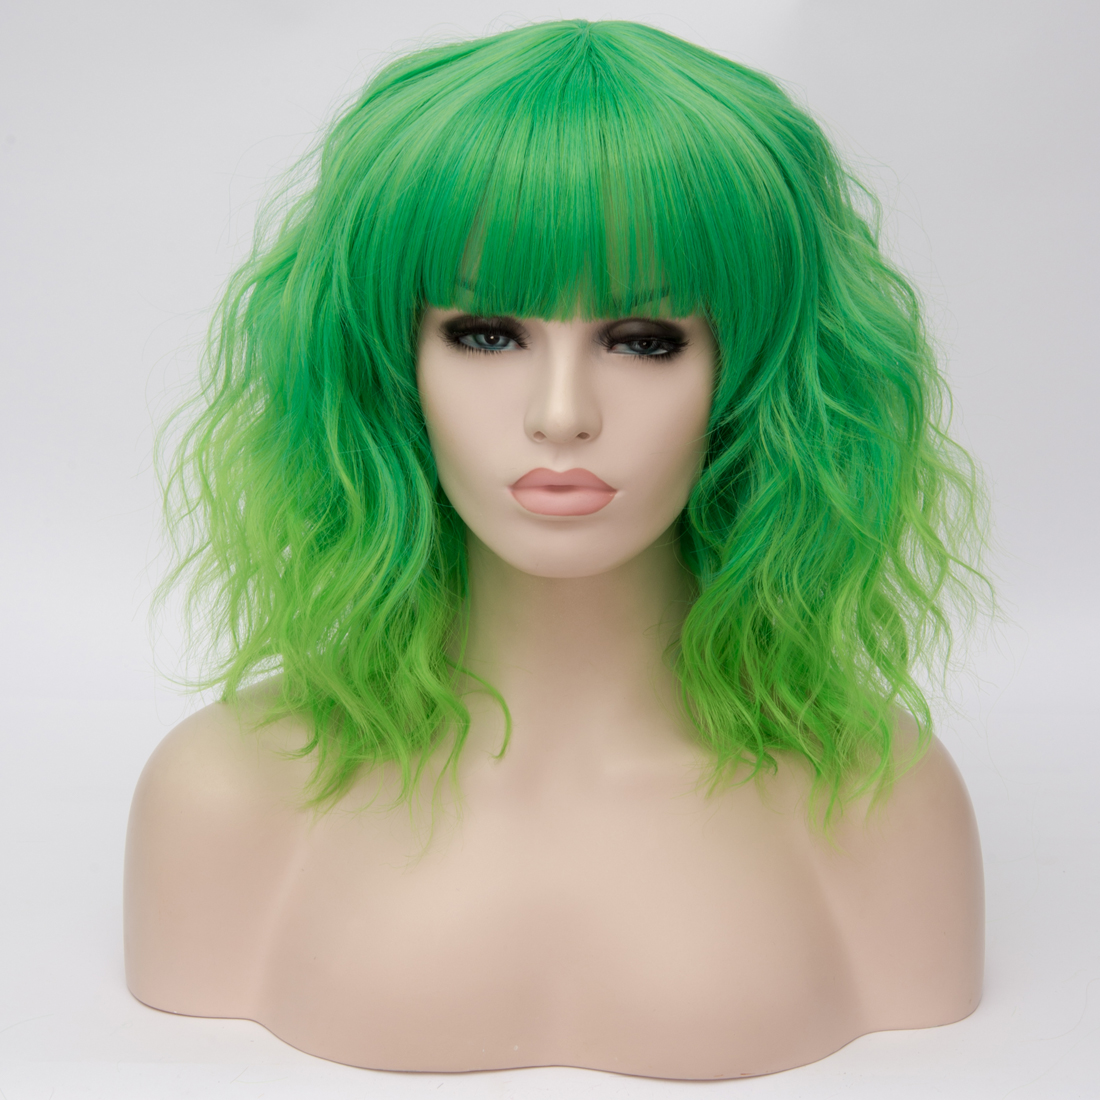 H59a3301b4c7944f78e91f5b47edfd744t - Similler Short Synthetic Wig for Women Cosplay Curly Hair Heat Resistance Ombre Color Blue Purple Pink Green Orange Two Tones